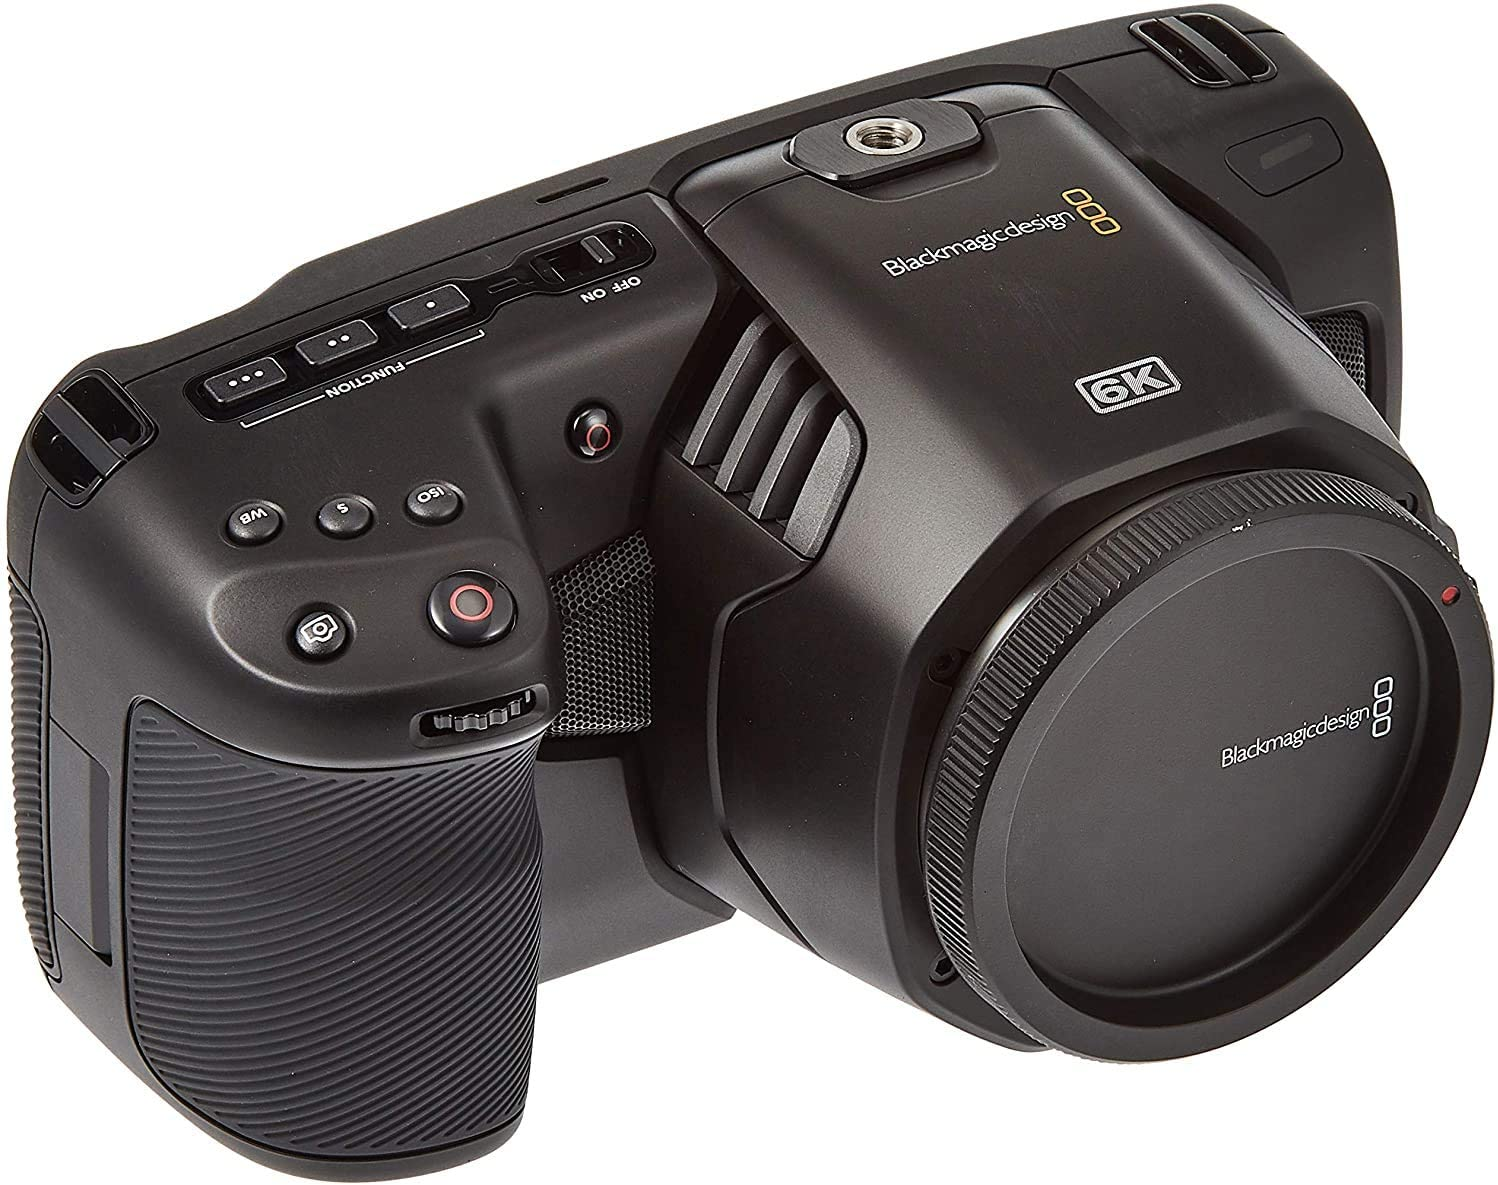 Blackmagic Design Pocket Cinema Camera 6k With Ef Lens Amazon Co Uk Camera Photo